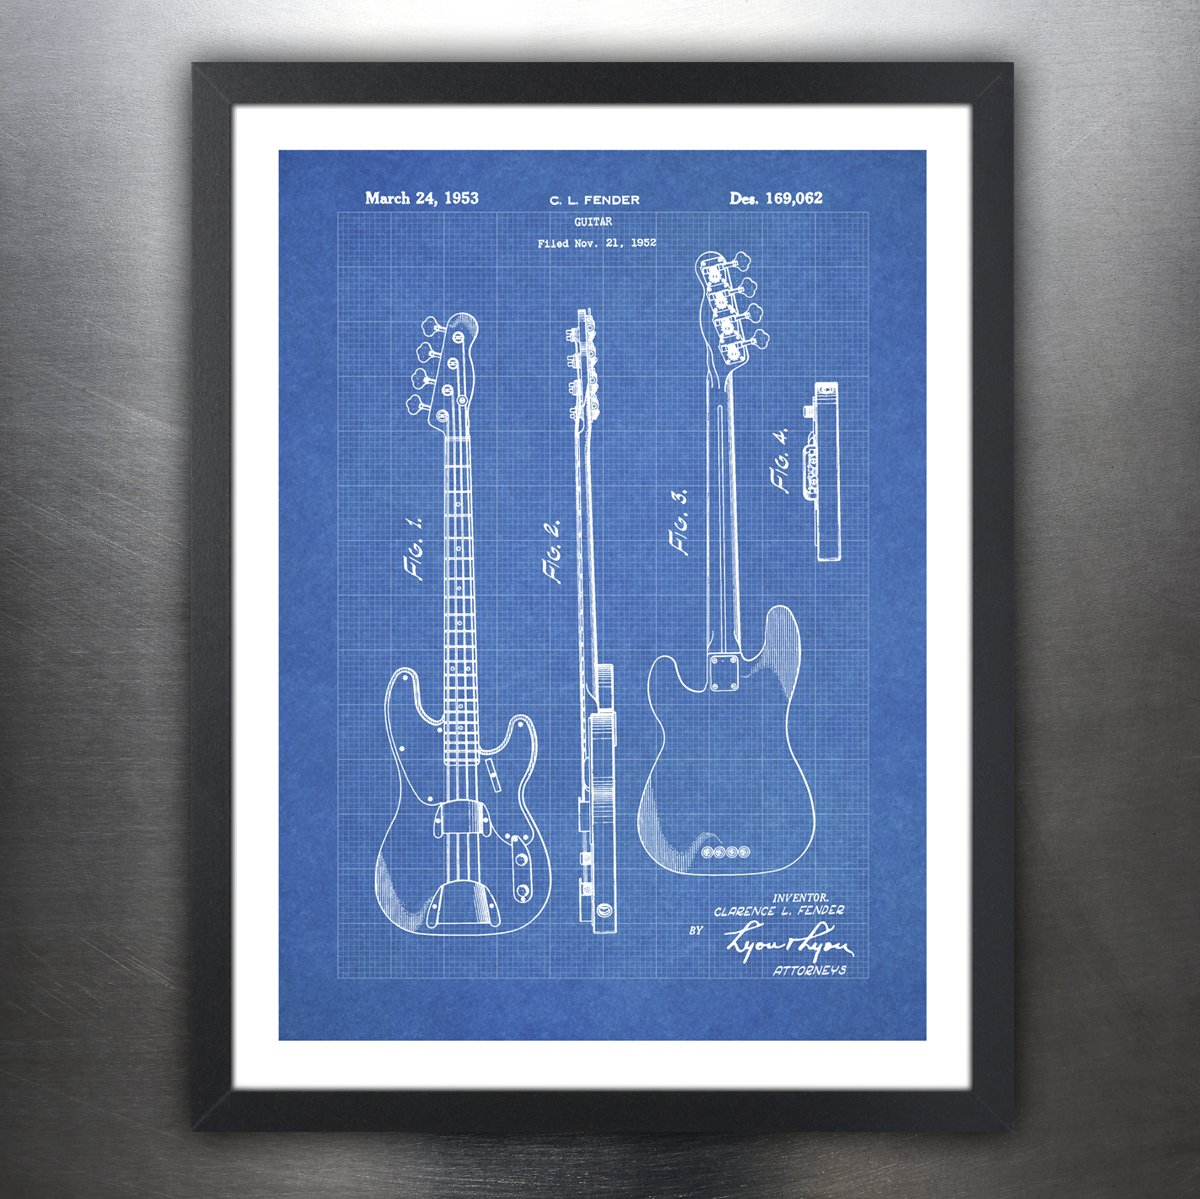 Amazon fender 1951 bass guitar poster blueprint us patent print amazon fender 1951 bass guitar poster blueprint us patent print 18x24 poster vintage reproduction gift unframed posters prints malvernweather Gallery